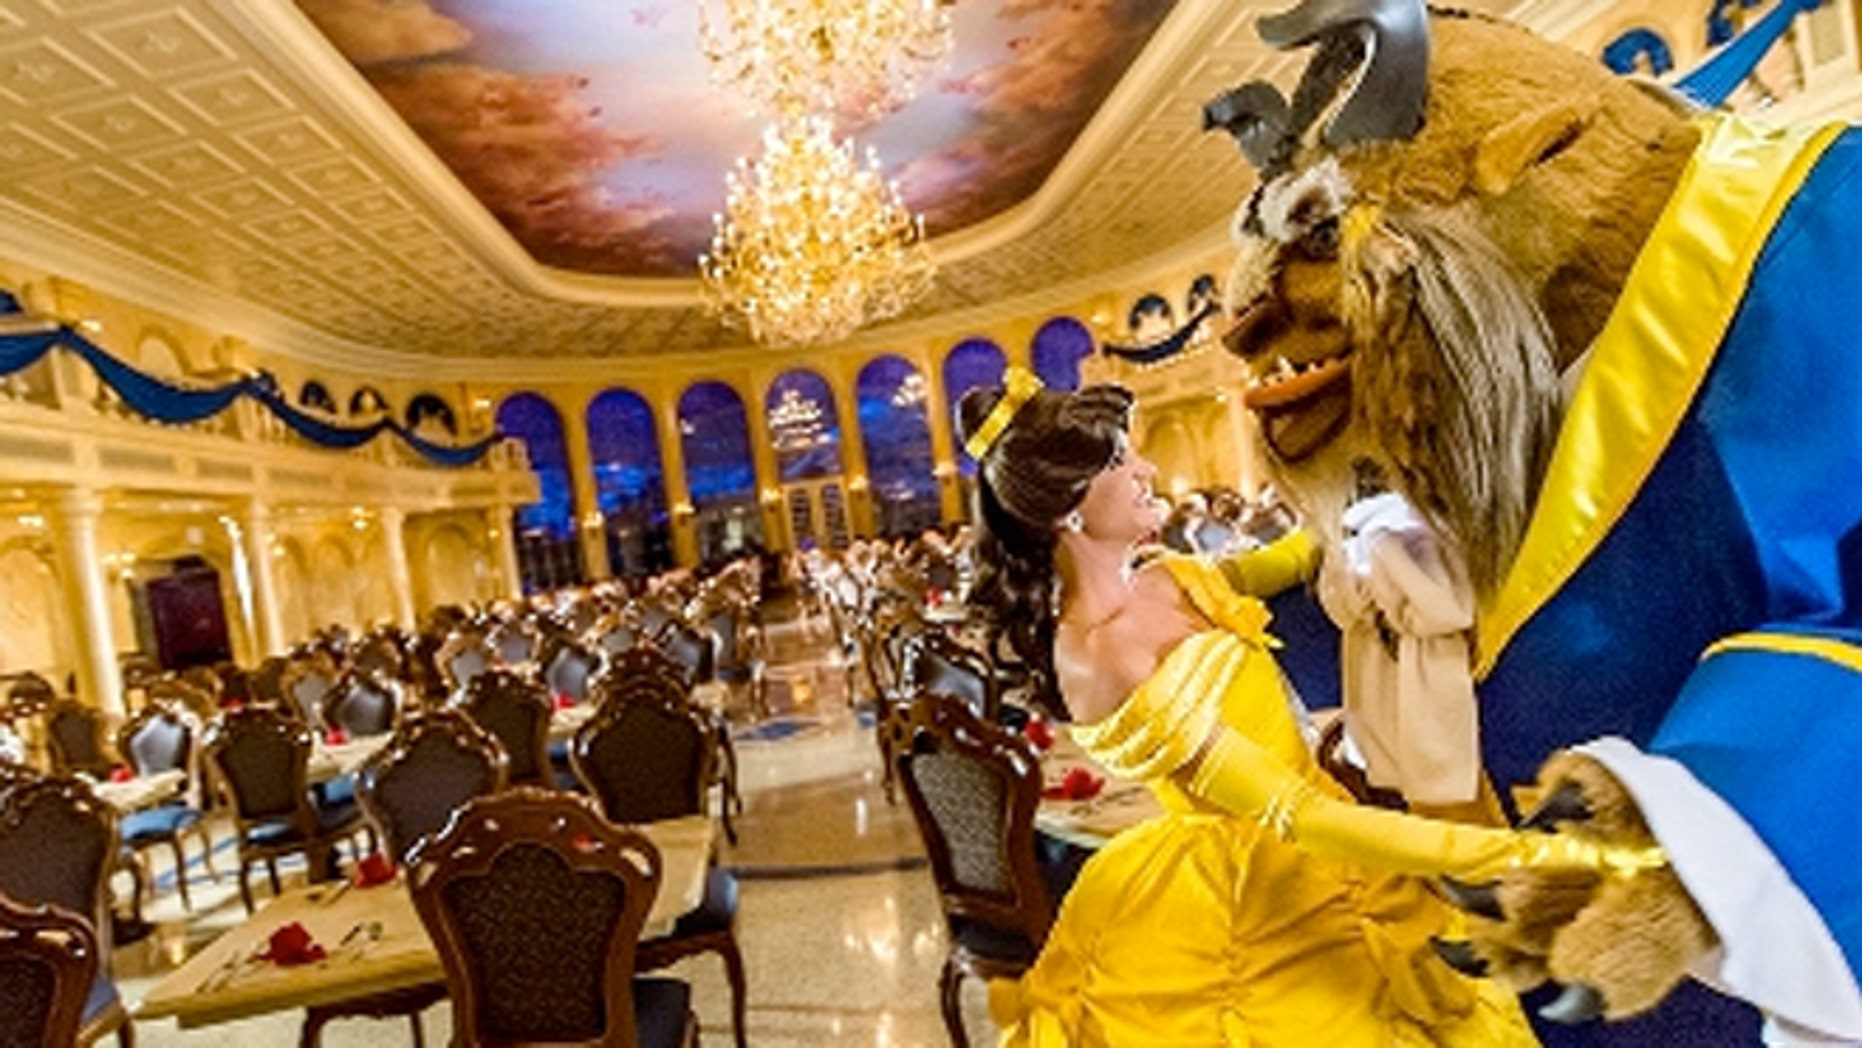 Visitors can pay to get a time slot for the coveted Be Our Guest restaurant.